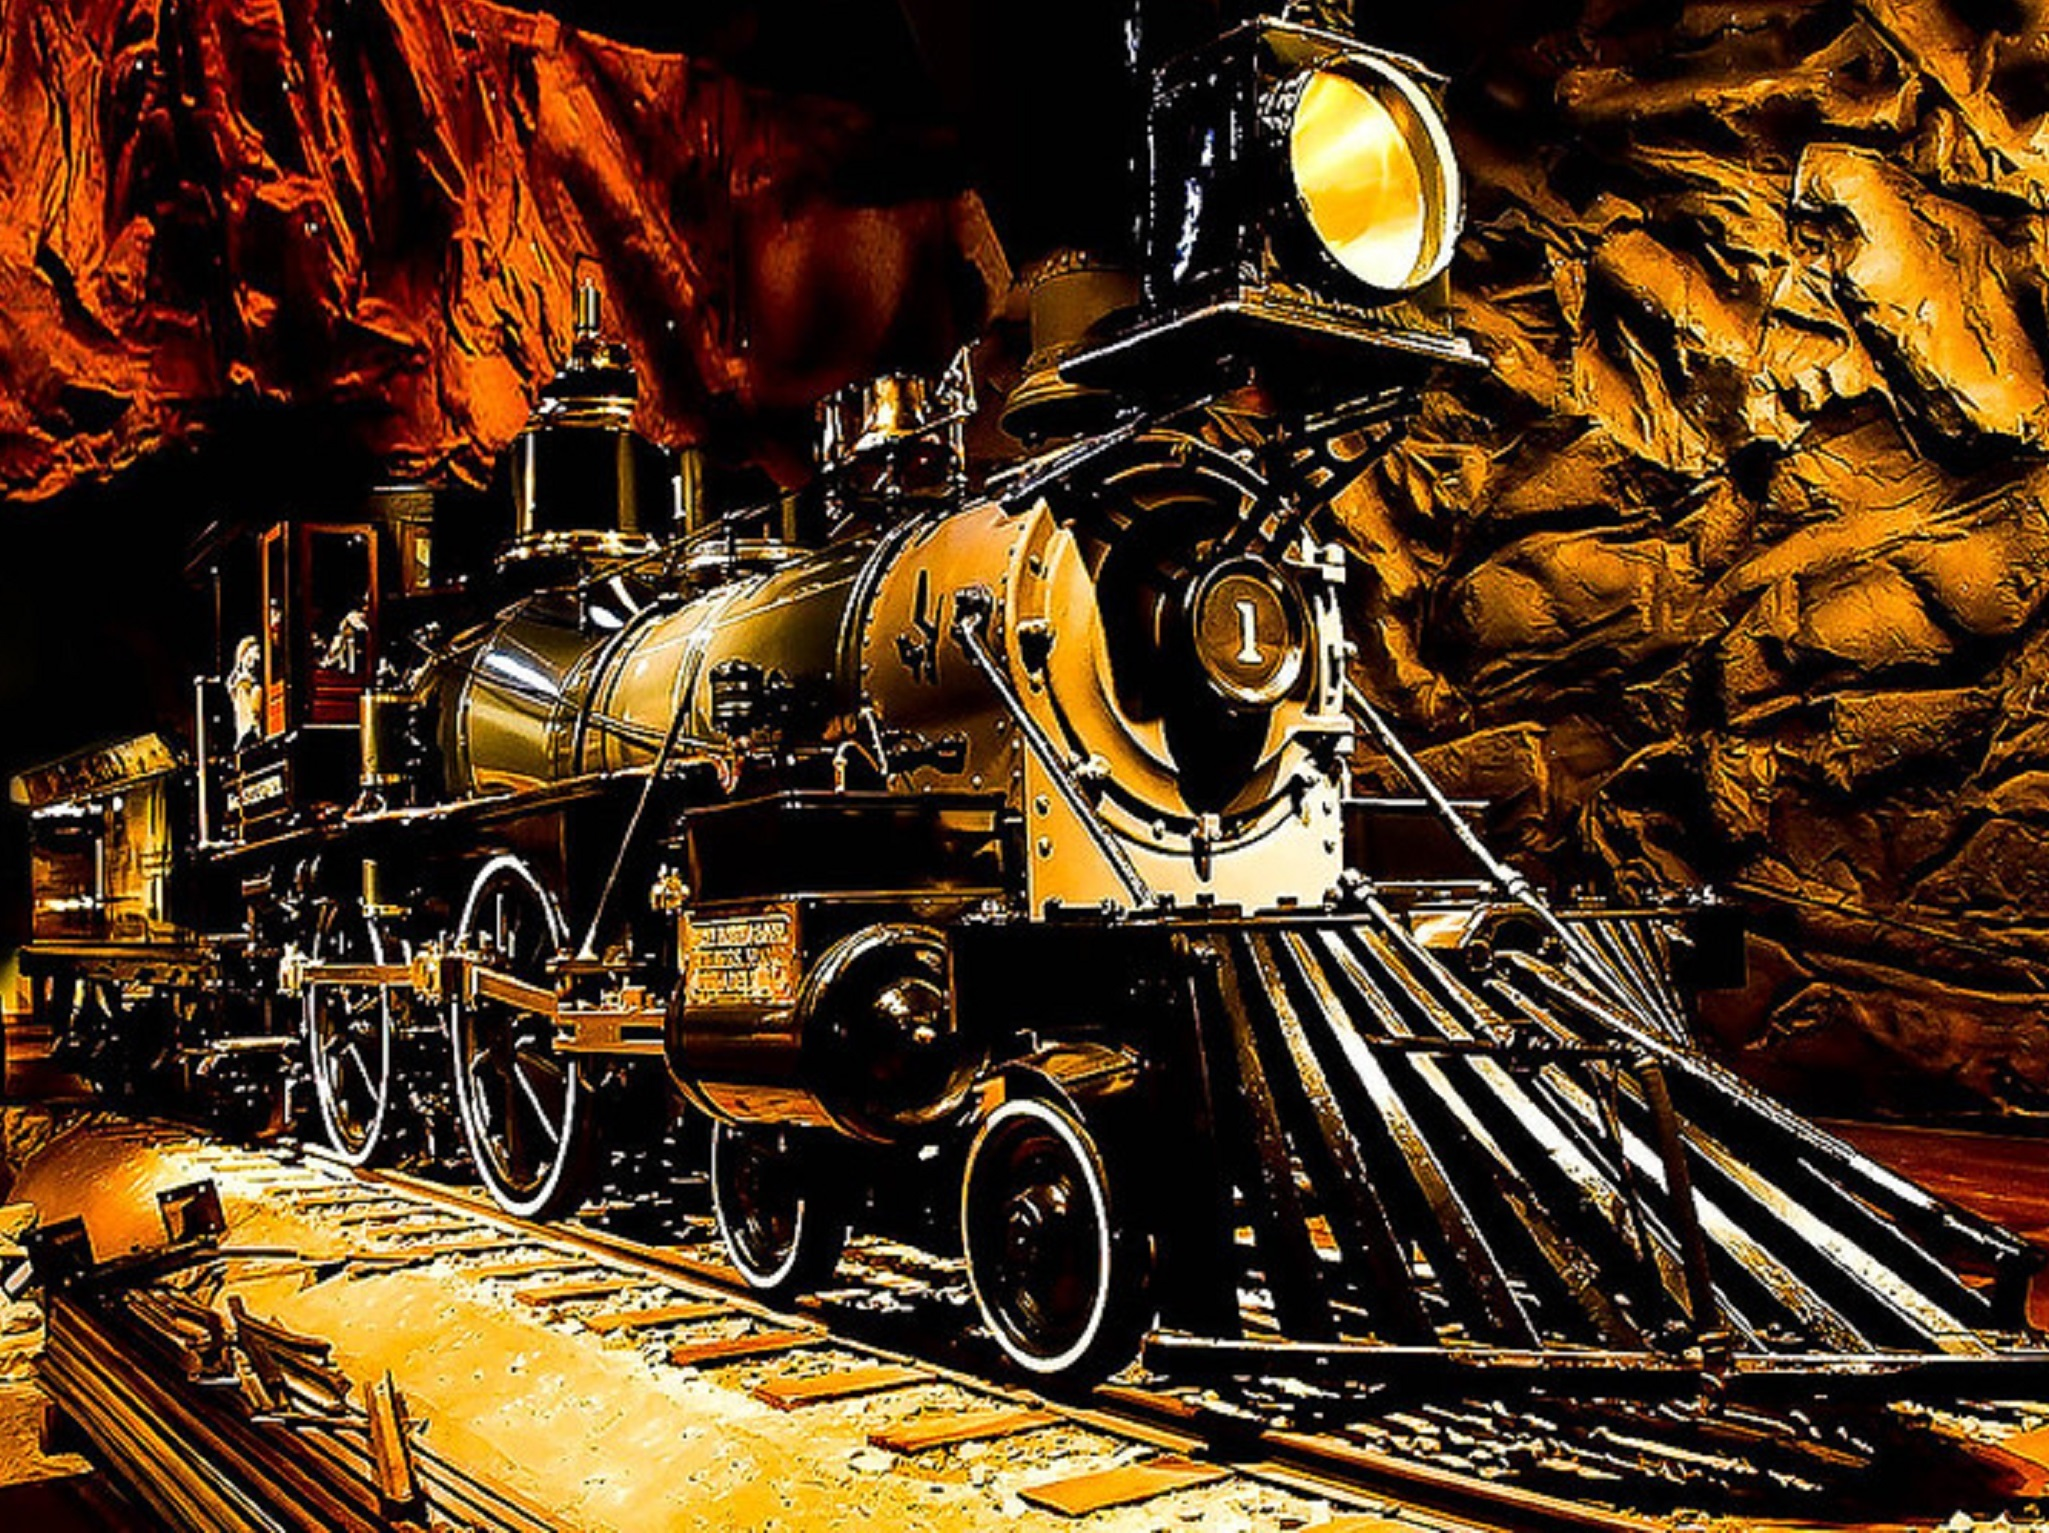 The steam engine of a vintage train